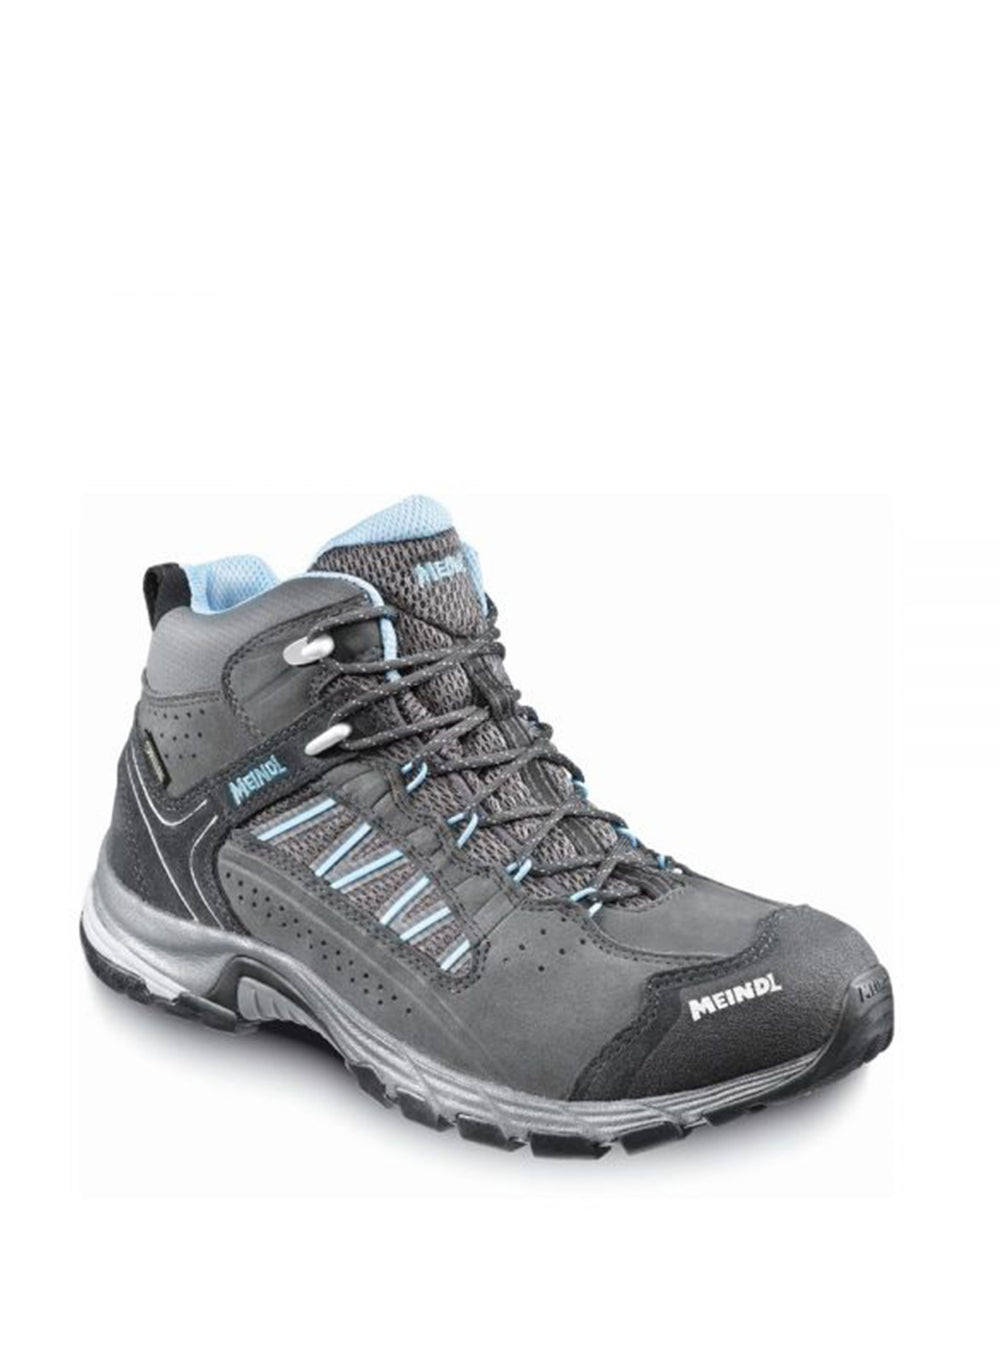 Meindl Journey Lady Mid GTX - Men's